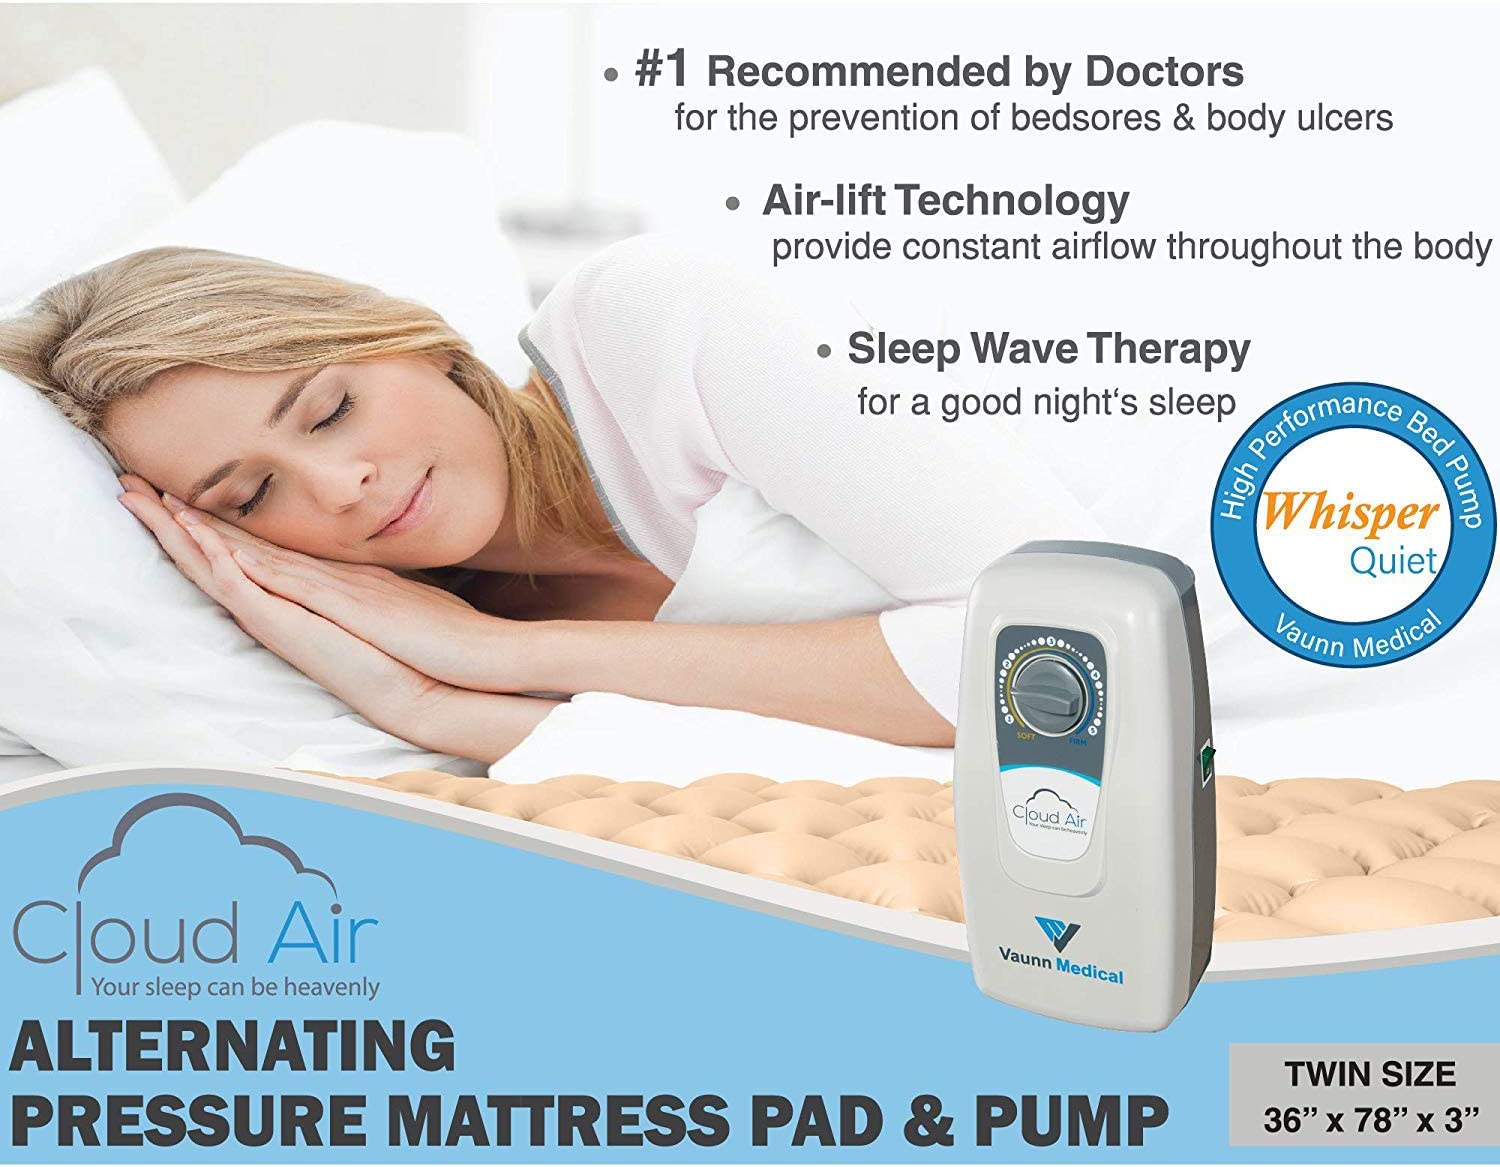 "Vaunn Medical Cloud Air Whisper Quiet Alternating Air Pressure Mattress Topper with Pump Twin Size 36"" x 78"" x 3"""